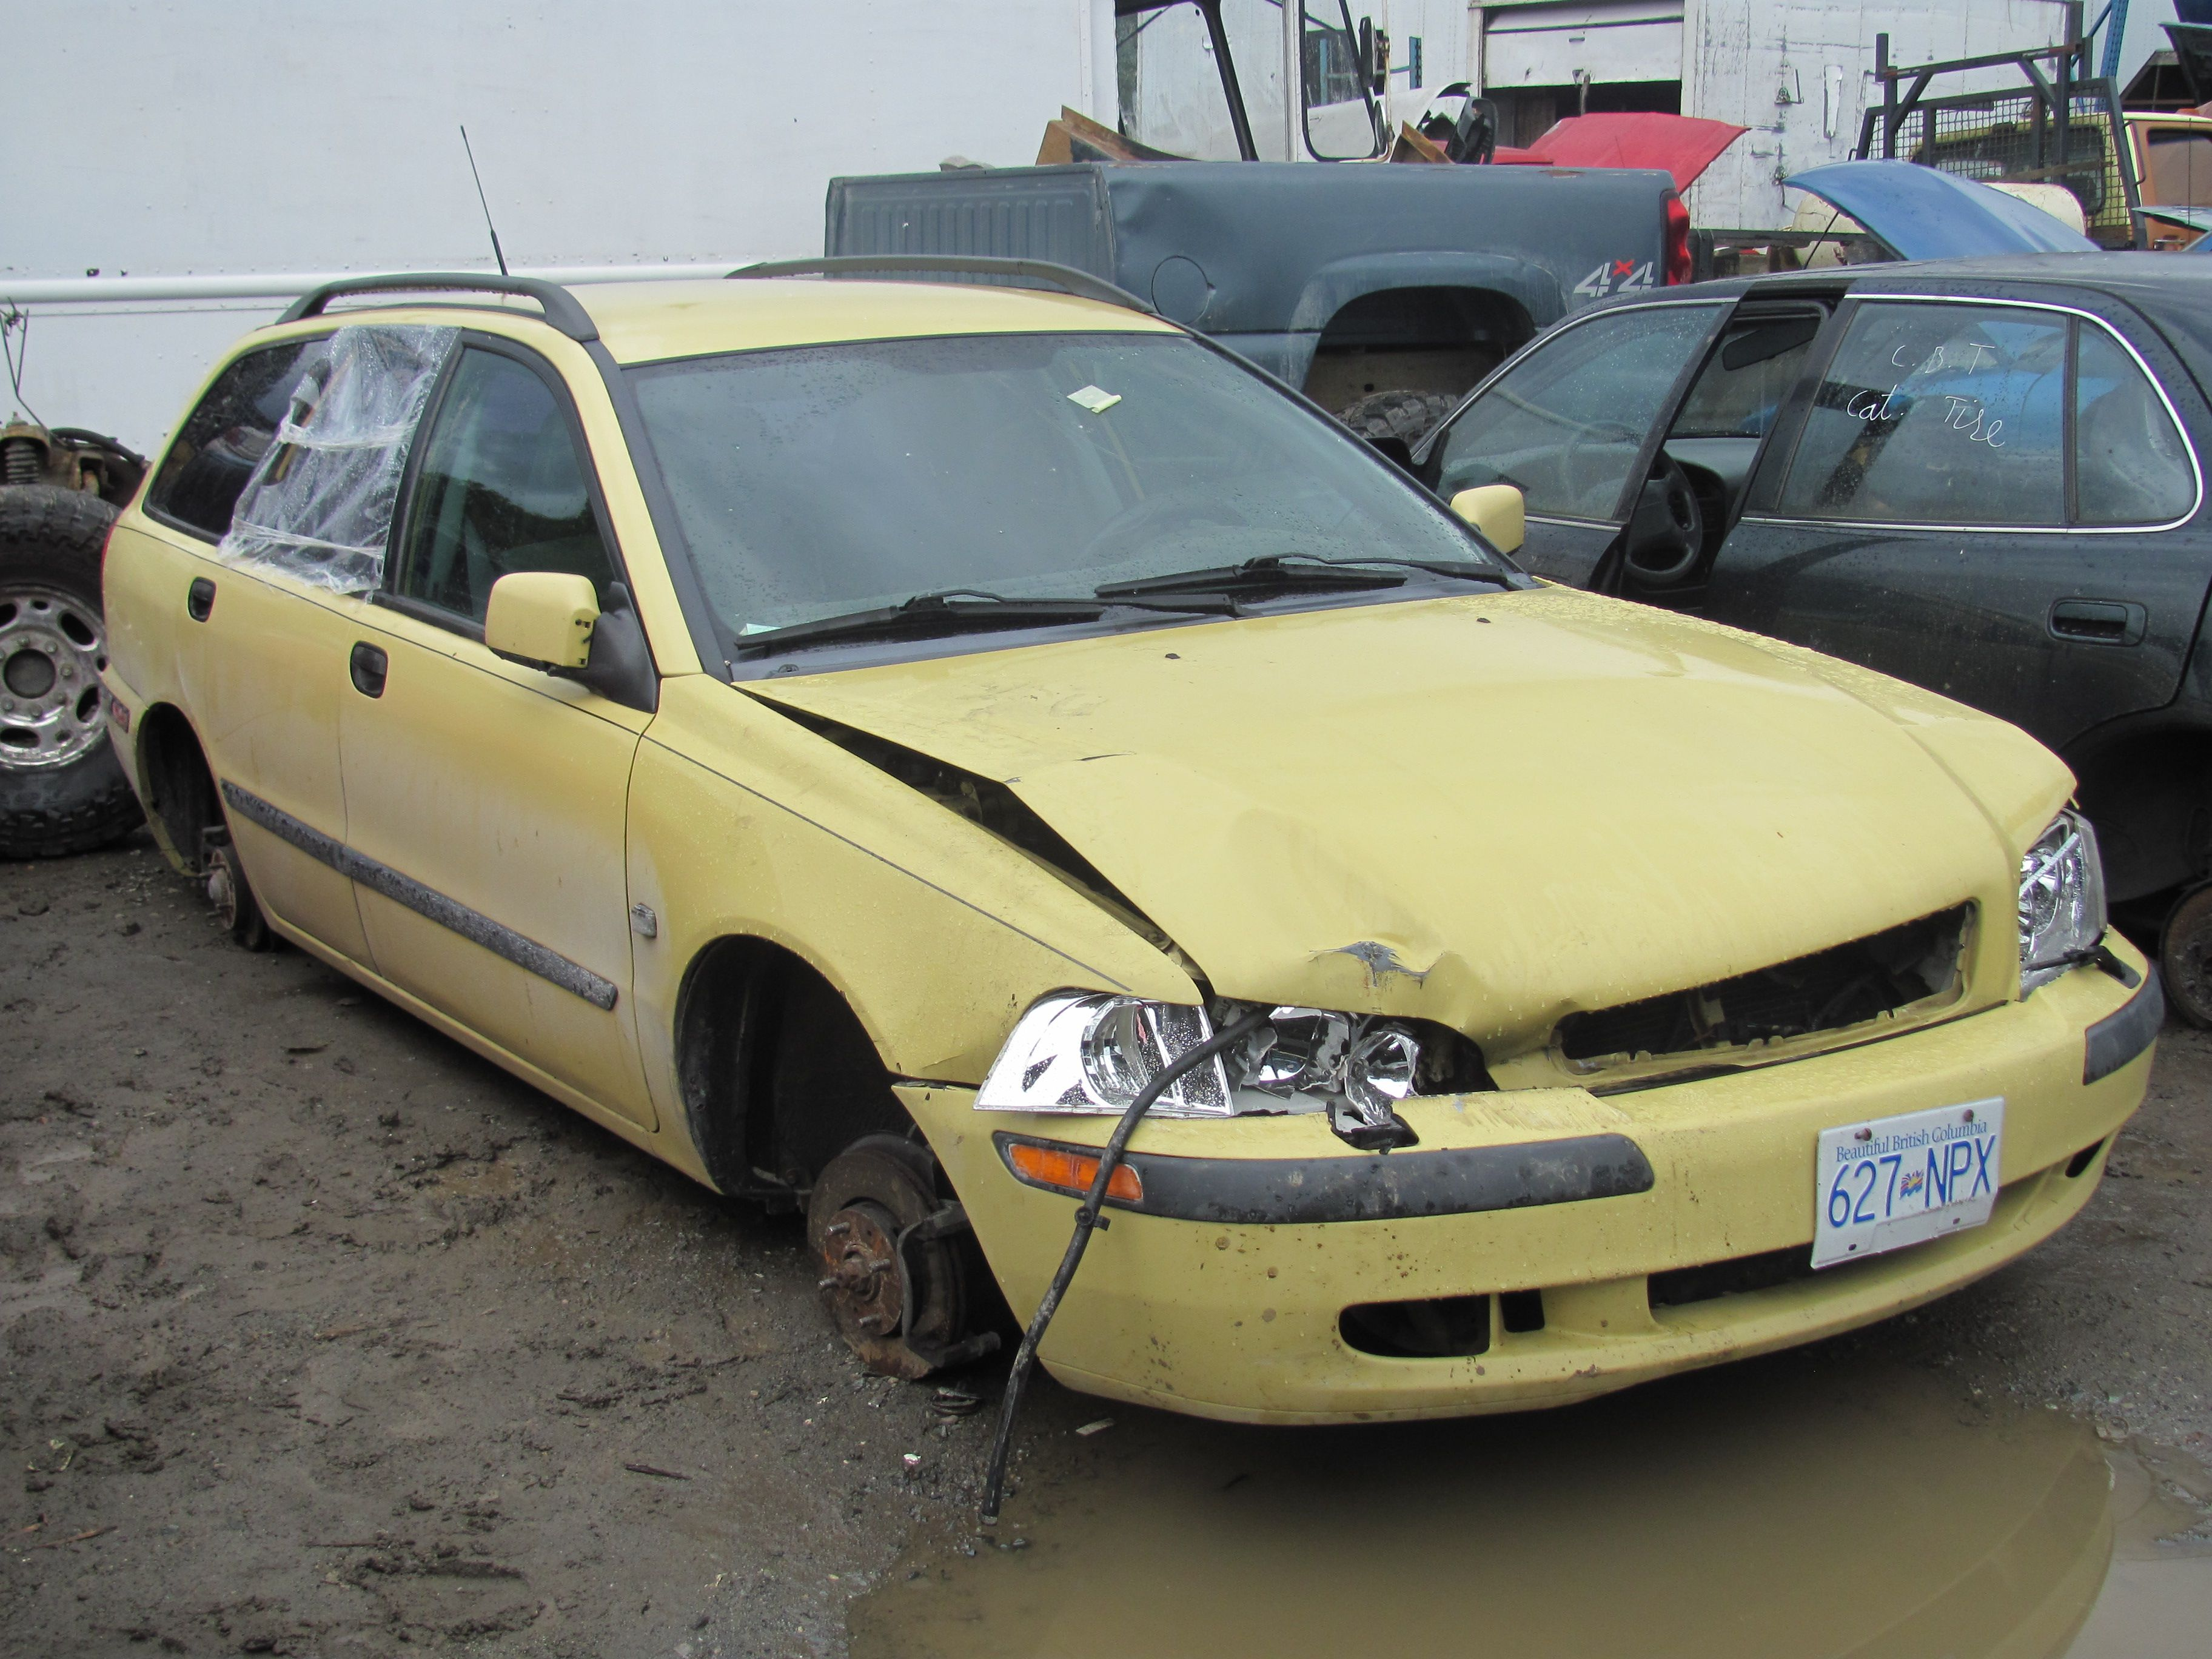 Used 2000 Volvo Parts for sale Motor runs. 34314 Vye Road